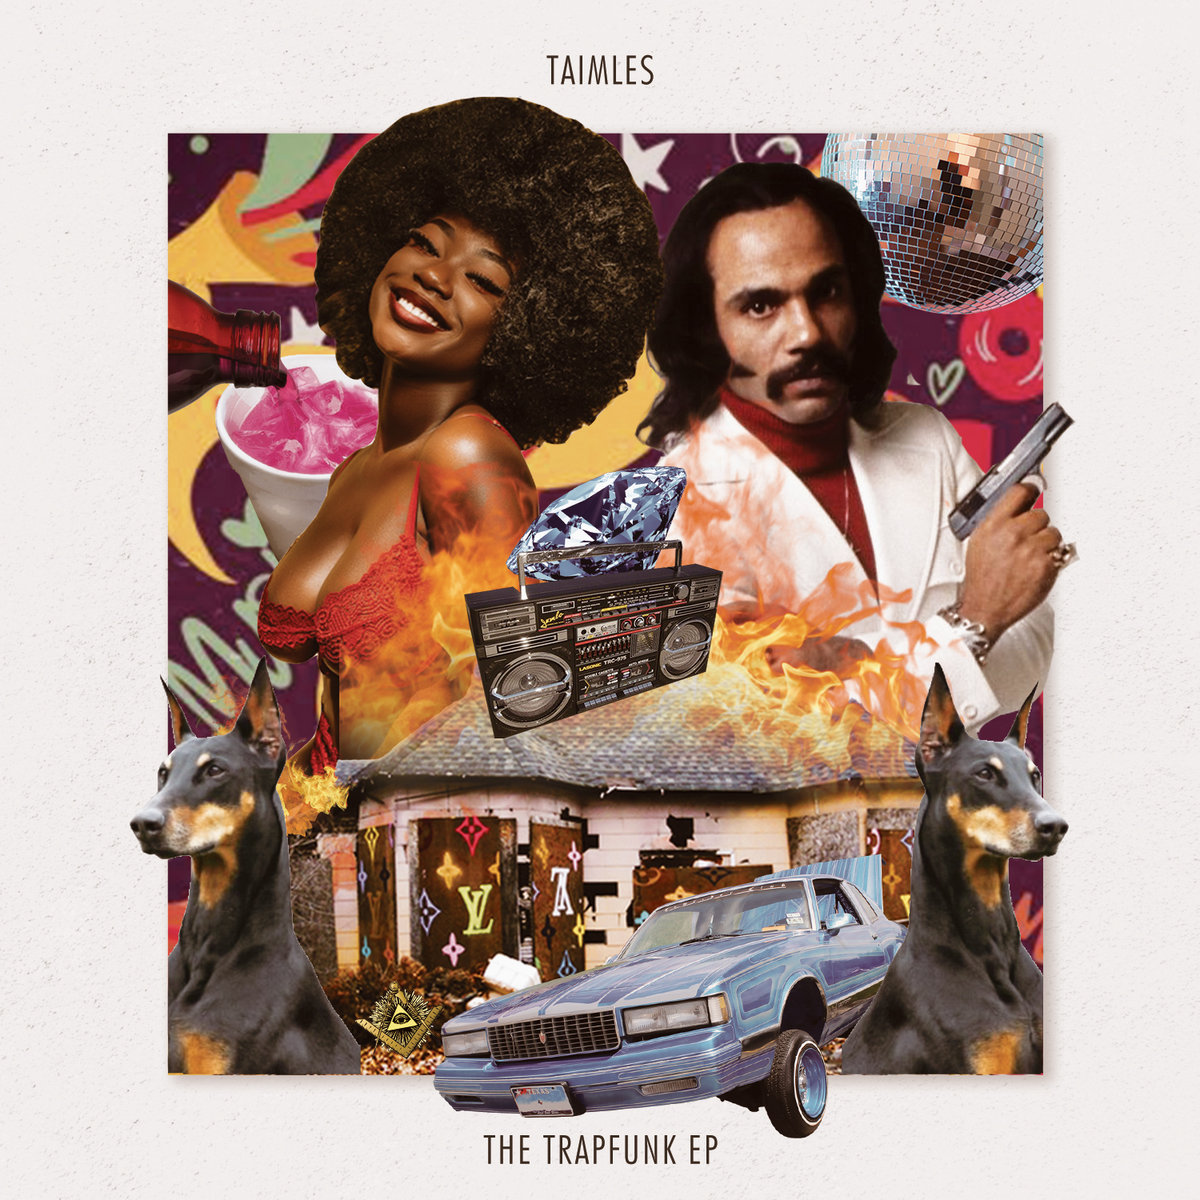 The Trapfunk Ep Taimles